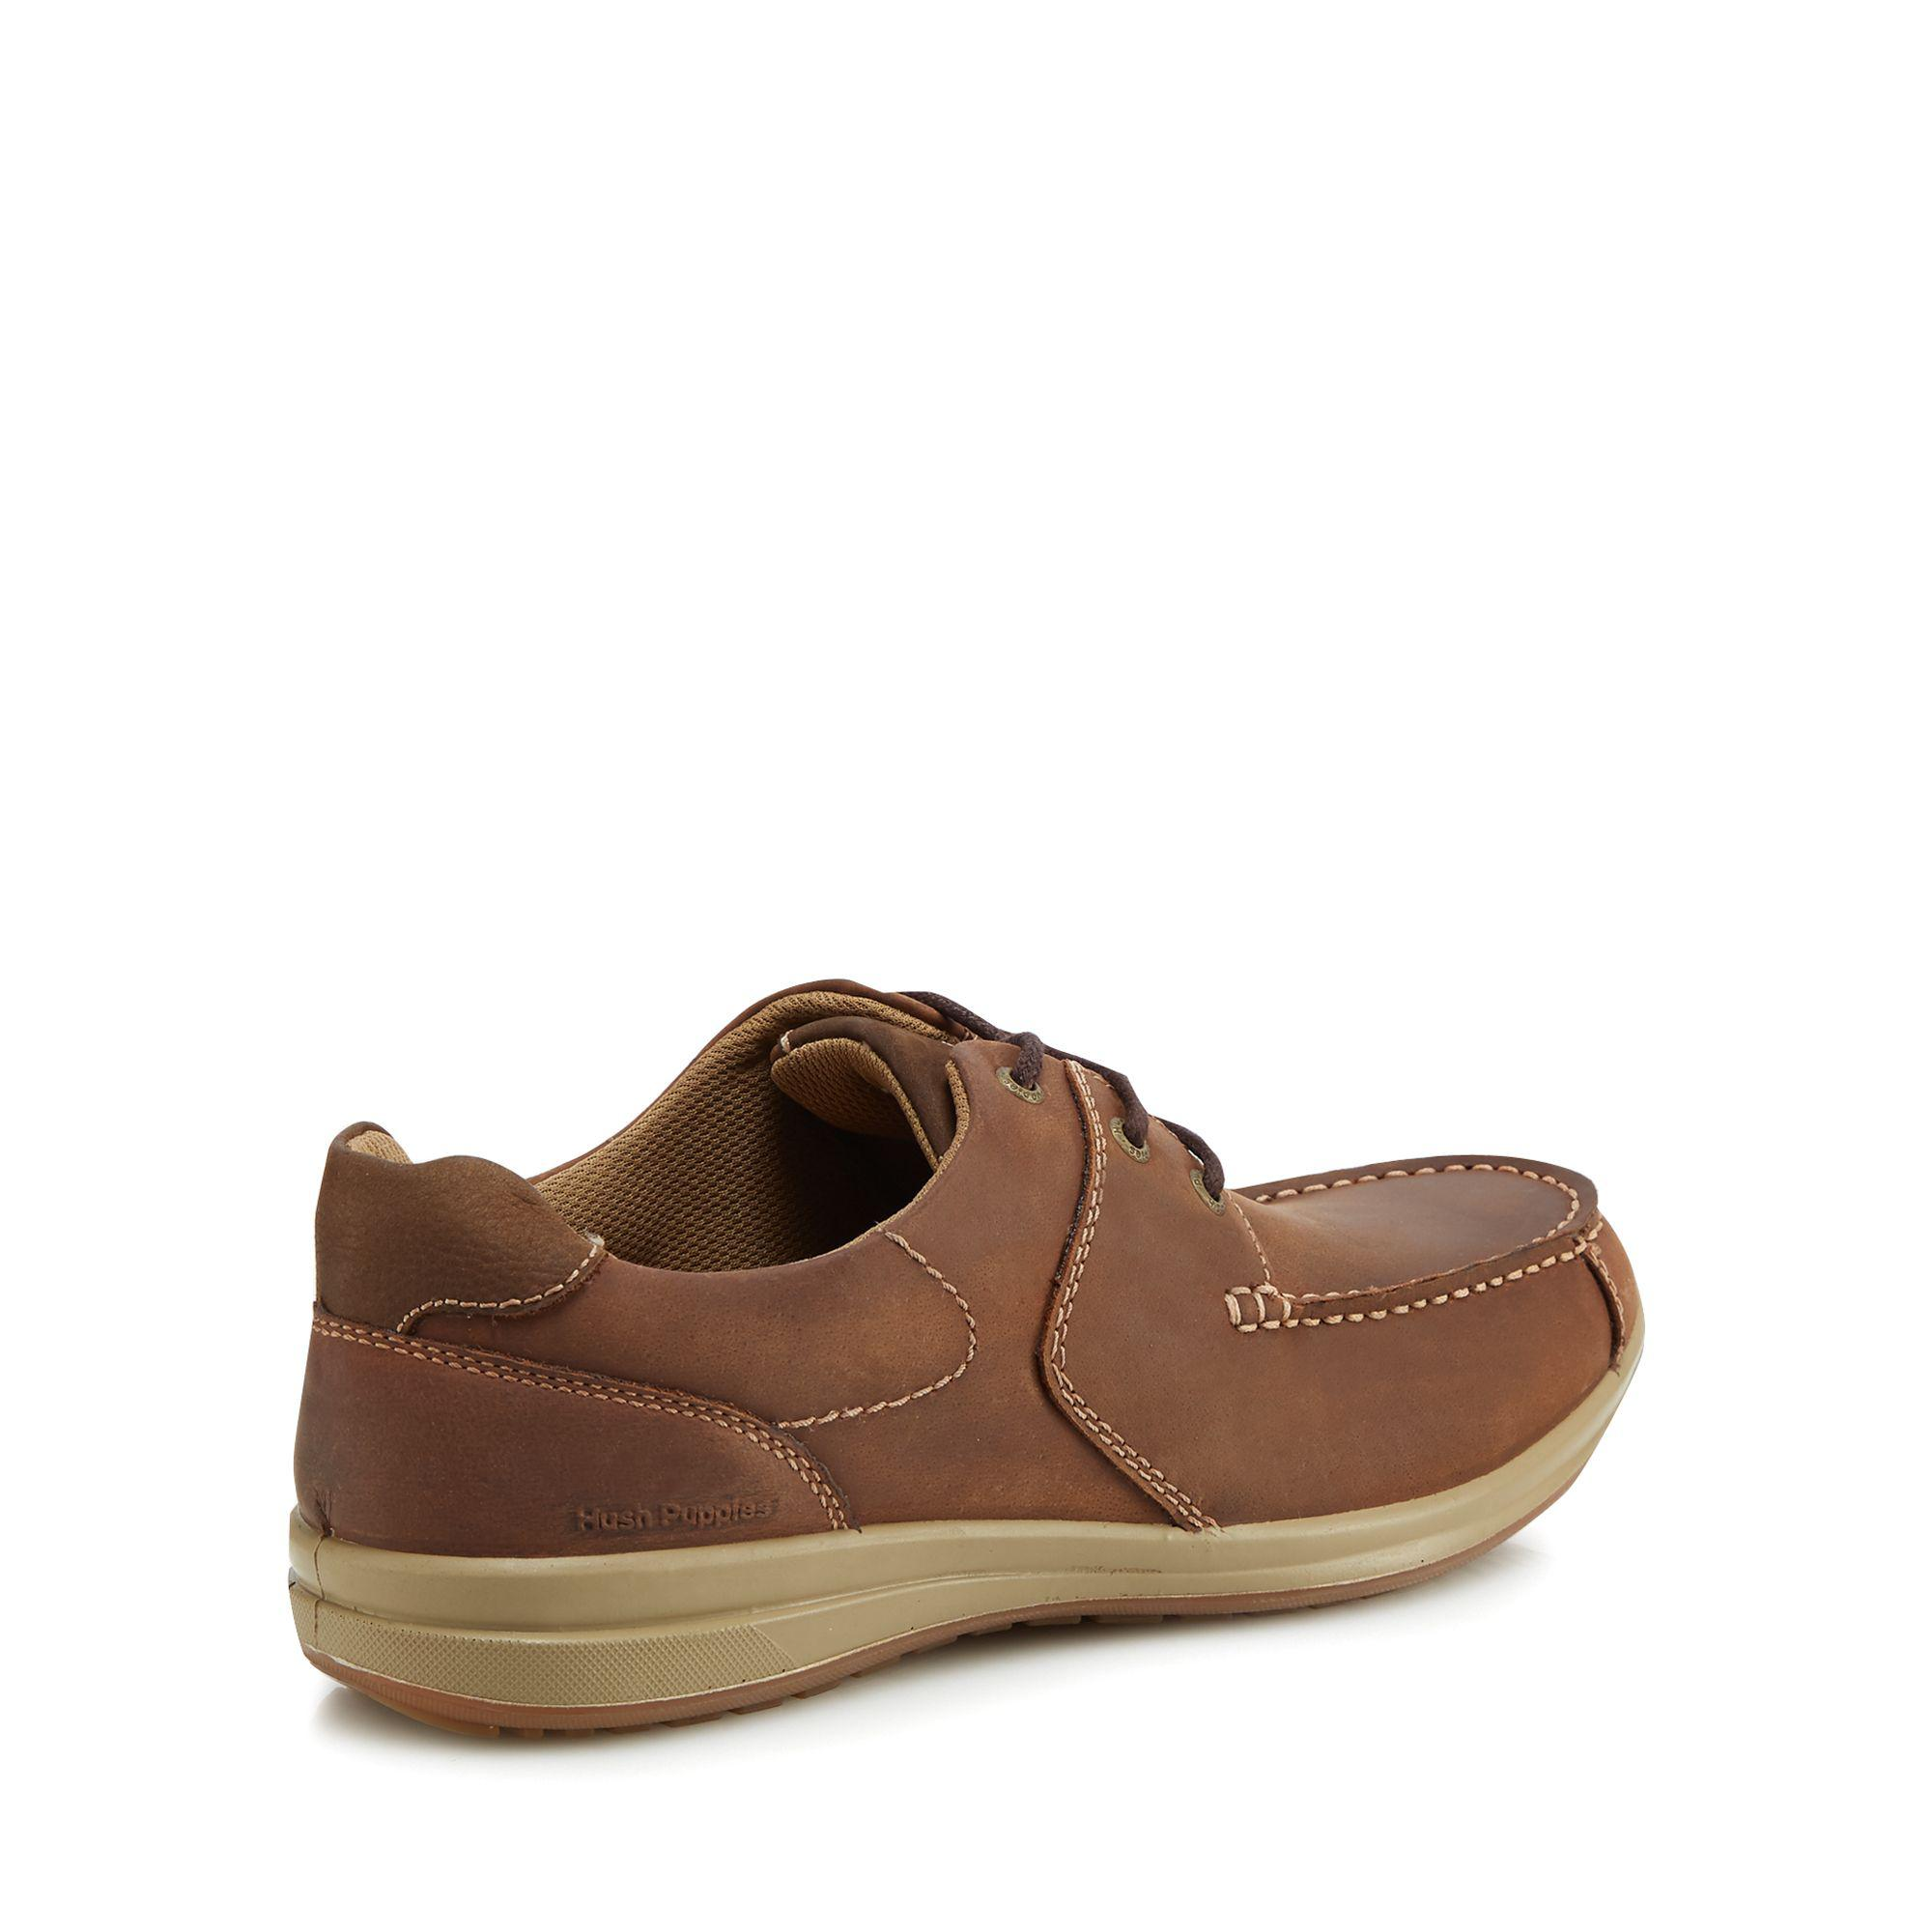 Brown leather 'Runner' Derby shoes with paypal cheap price free shipping exclusive free shipping best store to get discount footaction IEeqdlF